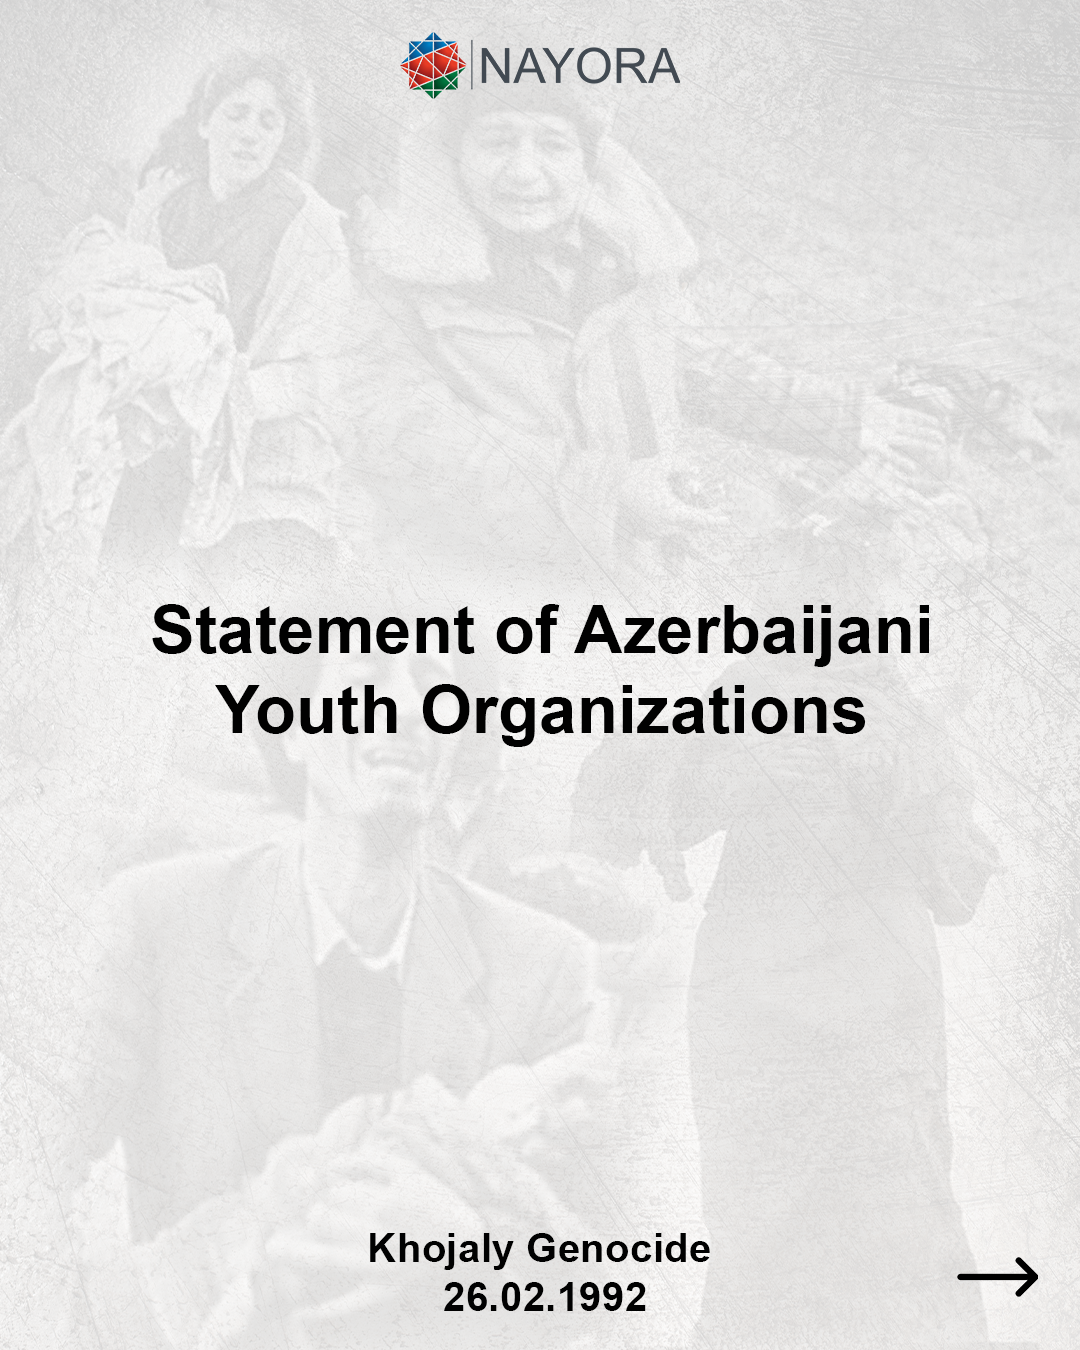 Statement on behalf of Youth NGOs of the Republic of Azerbaijan